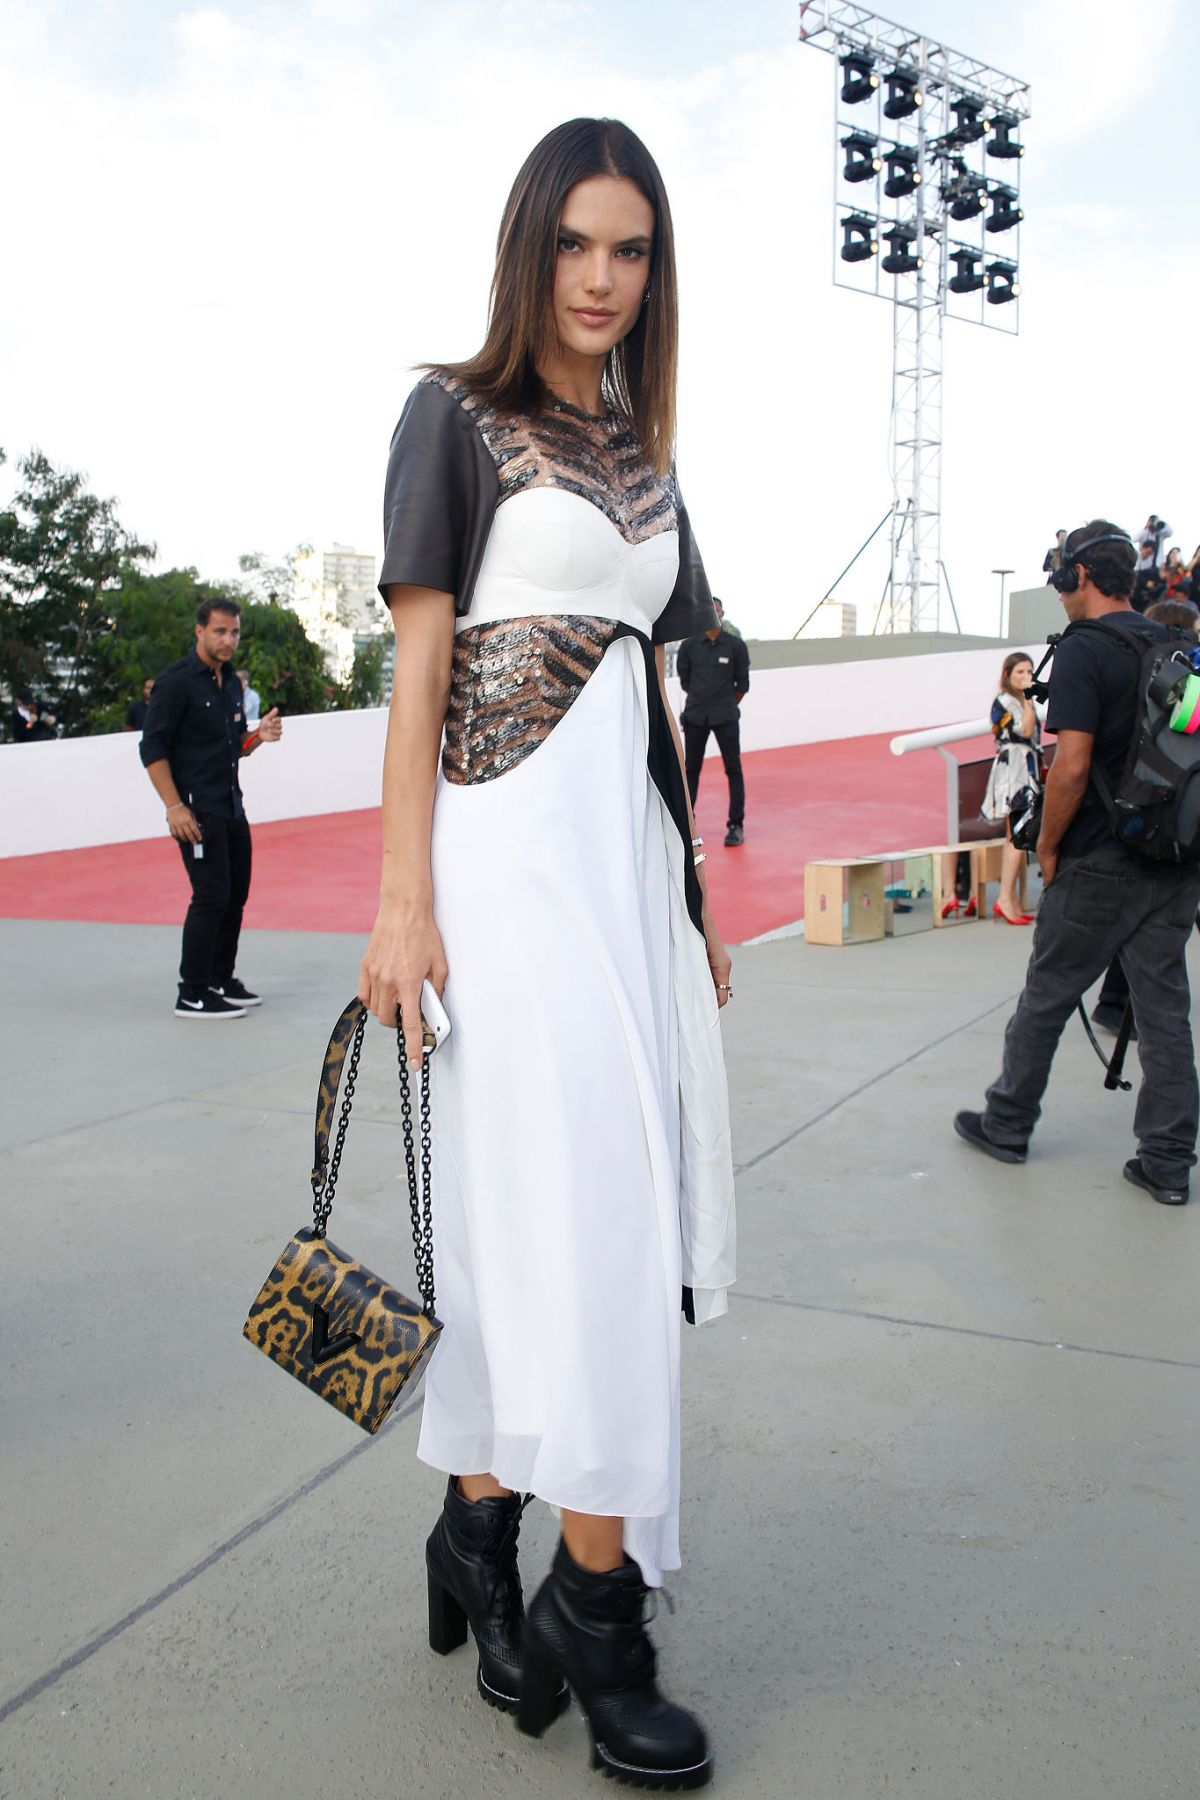 ALESSANDRA AMBROSIO at Louis Vuitton 2017 Cruise Collection in Brazil 05/28/2016